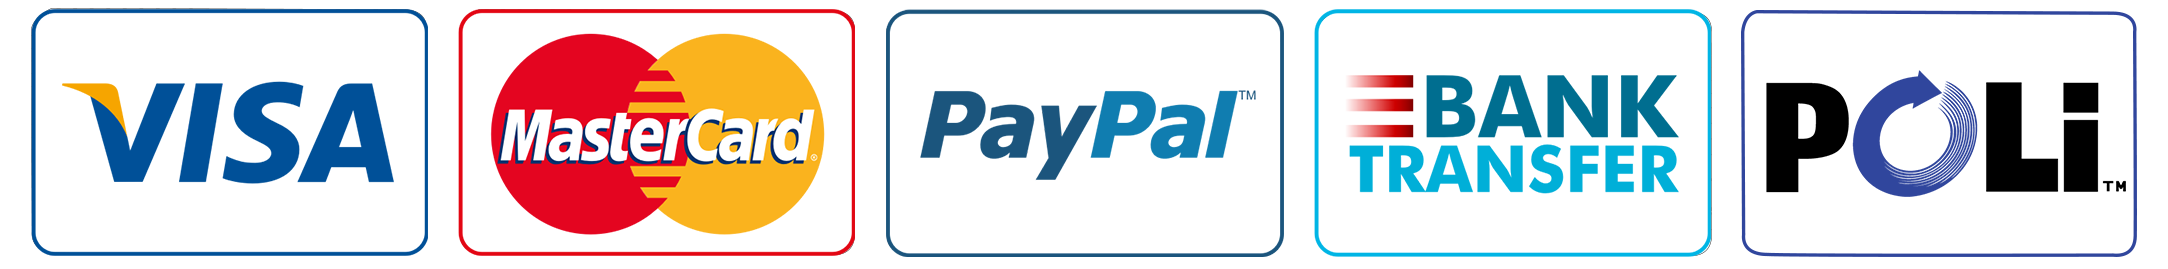 Picture of accepted payment methods - Paypal-visa-poli-bank-transfer